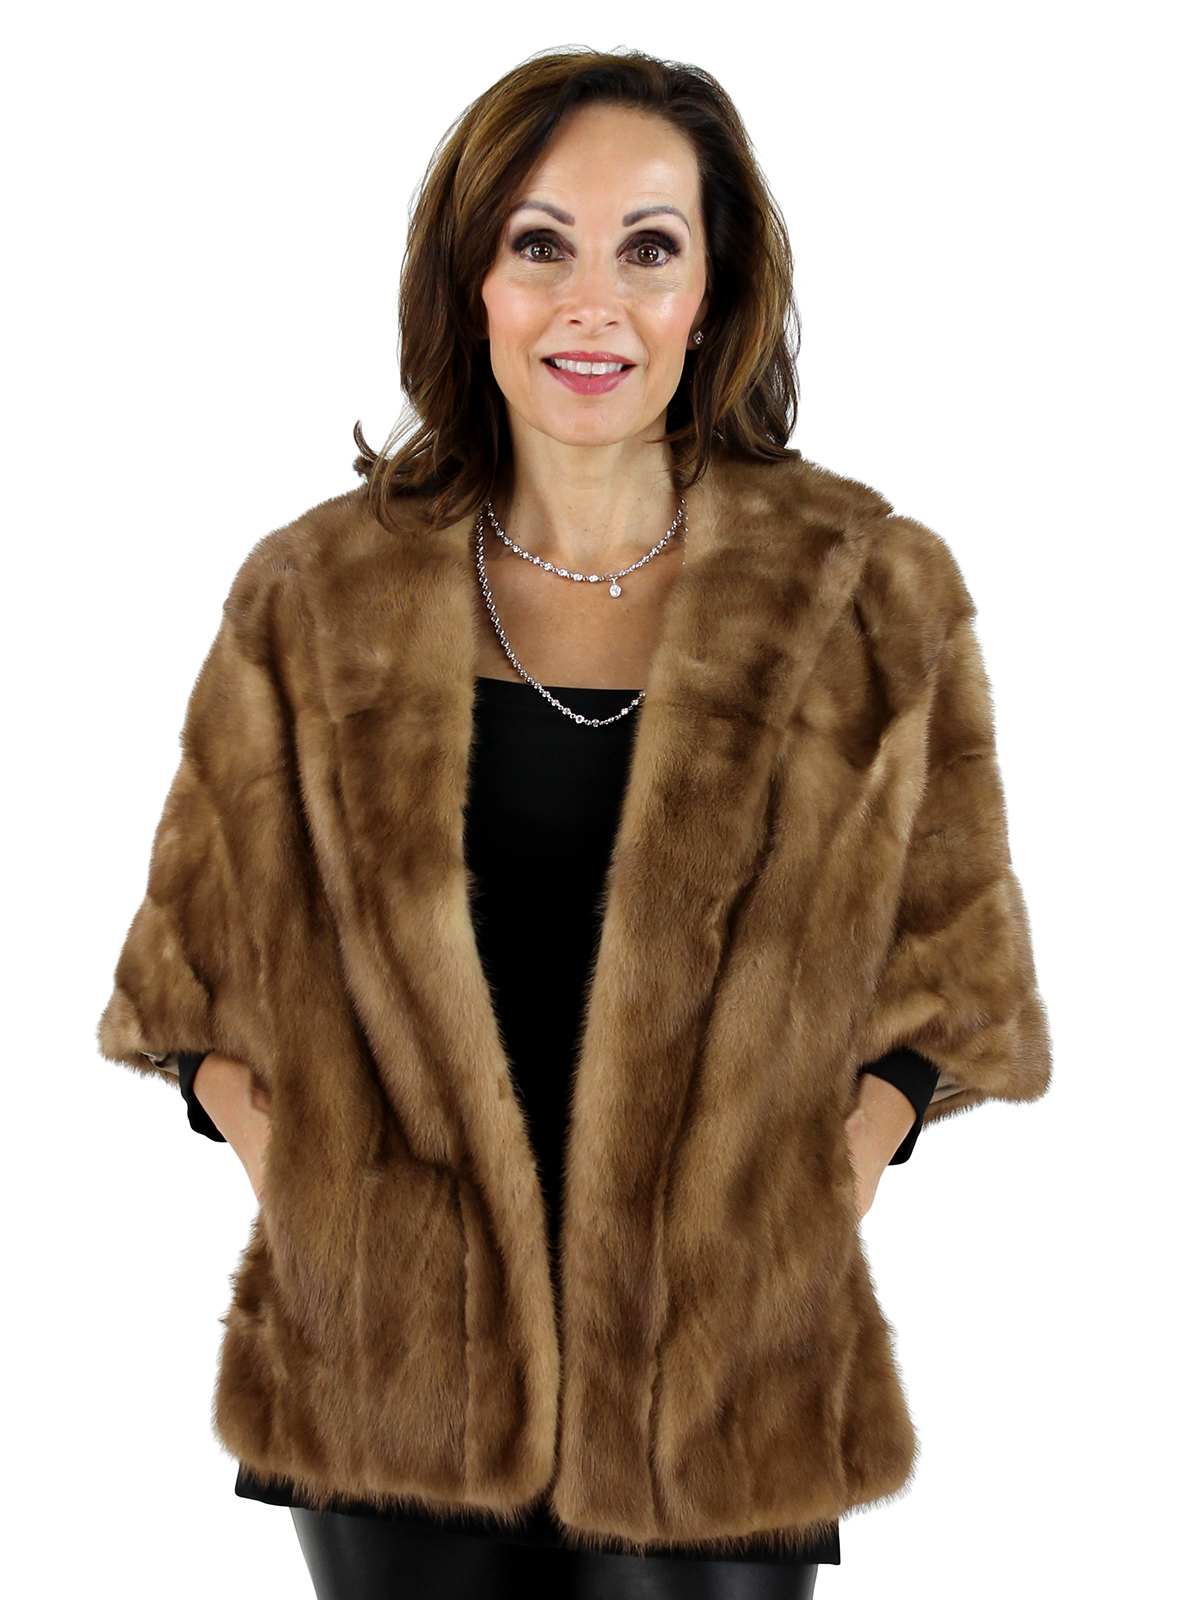 Woman's Autumn Haze Mink Fur Stole